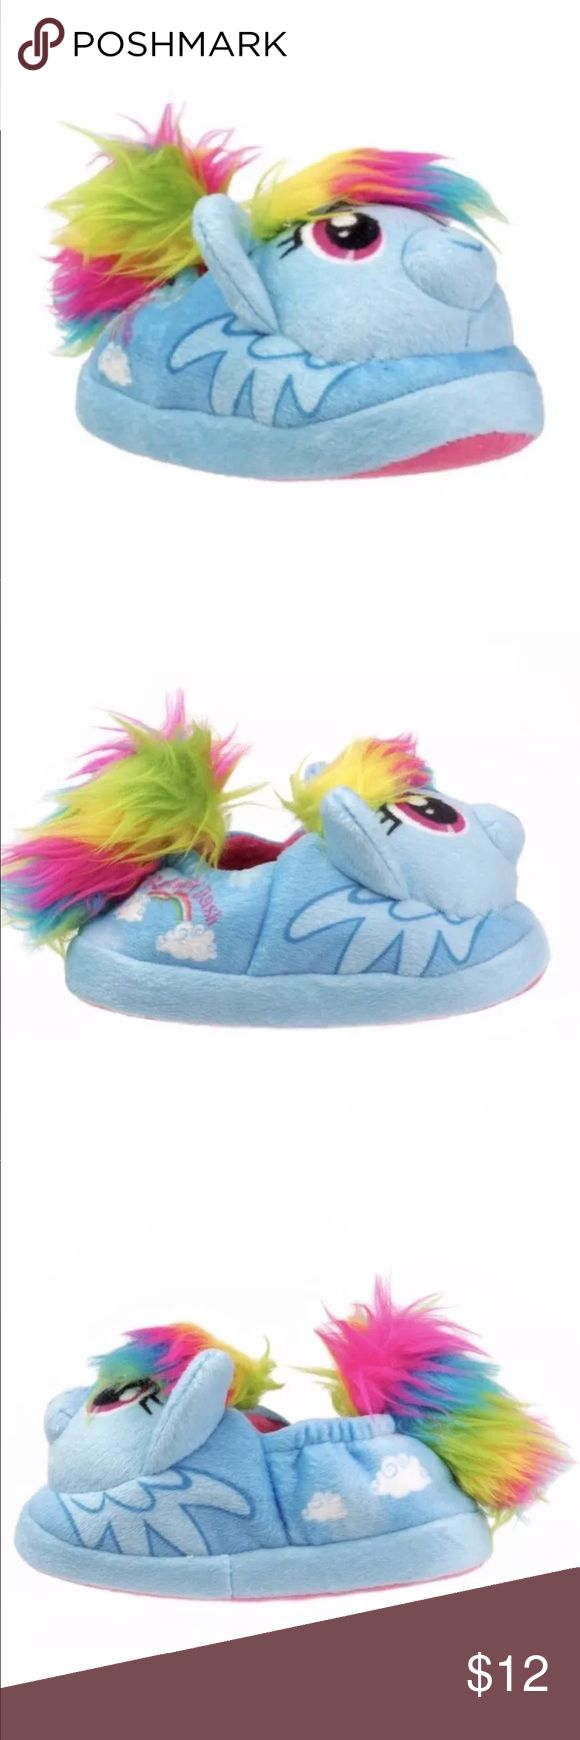 My Little Pony Rainbow Dash Slippers Small 5/6 NEW Hasbro My Little Pony Rainbow Dash Plush Toddler Girls Slippers Shoe Small 5/6 NWT. Take Rainbow Dash wherever you go in comfort and style!  100% Polyester plush velvet with faux fur trim  Soft lining with elastic collar  Cotton twill sole with plasticized dot grips to prevent slipping. Hasbro My Little Pony Shoes Slippers